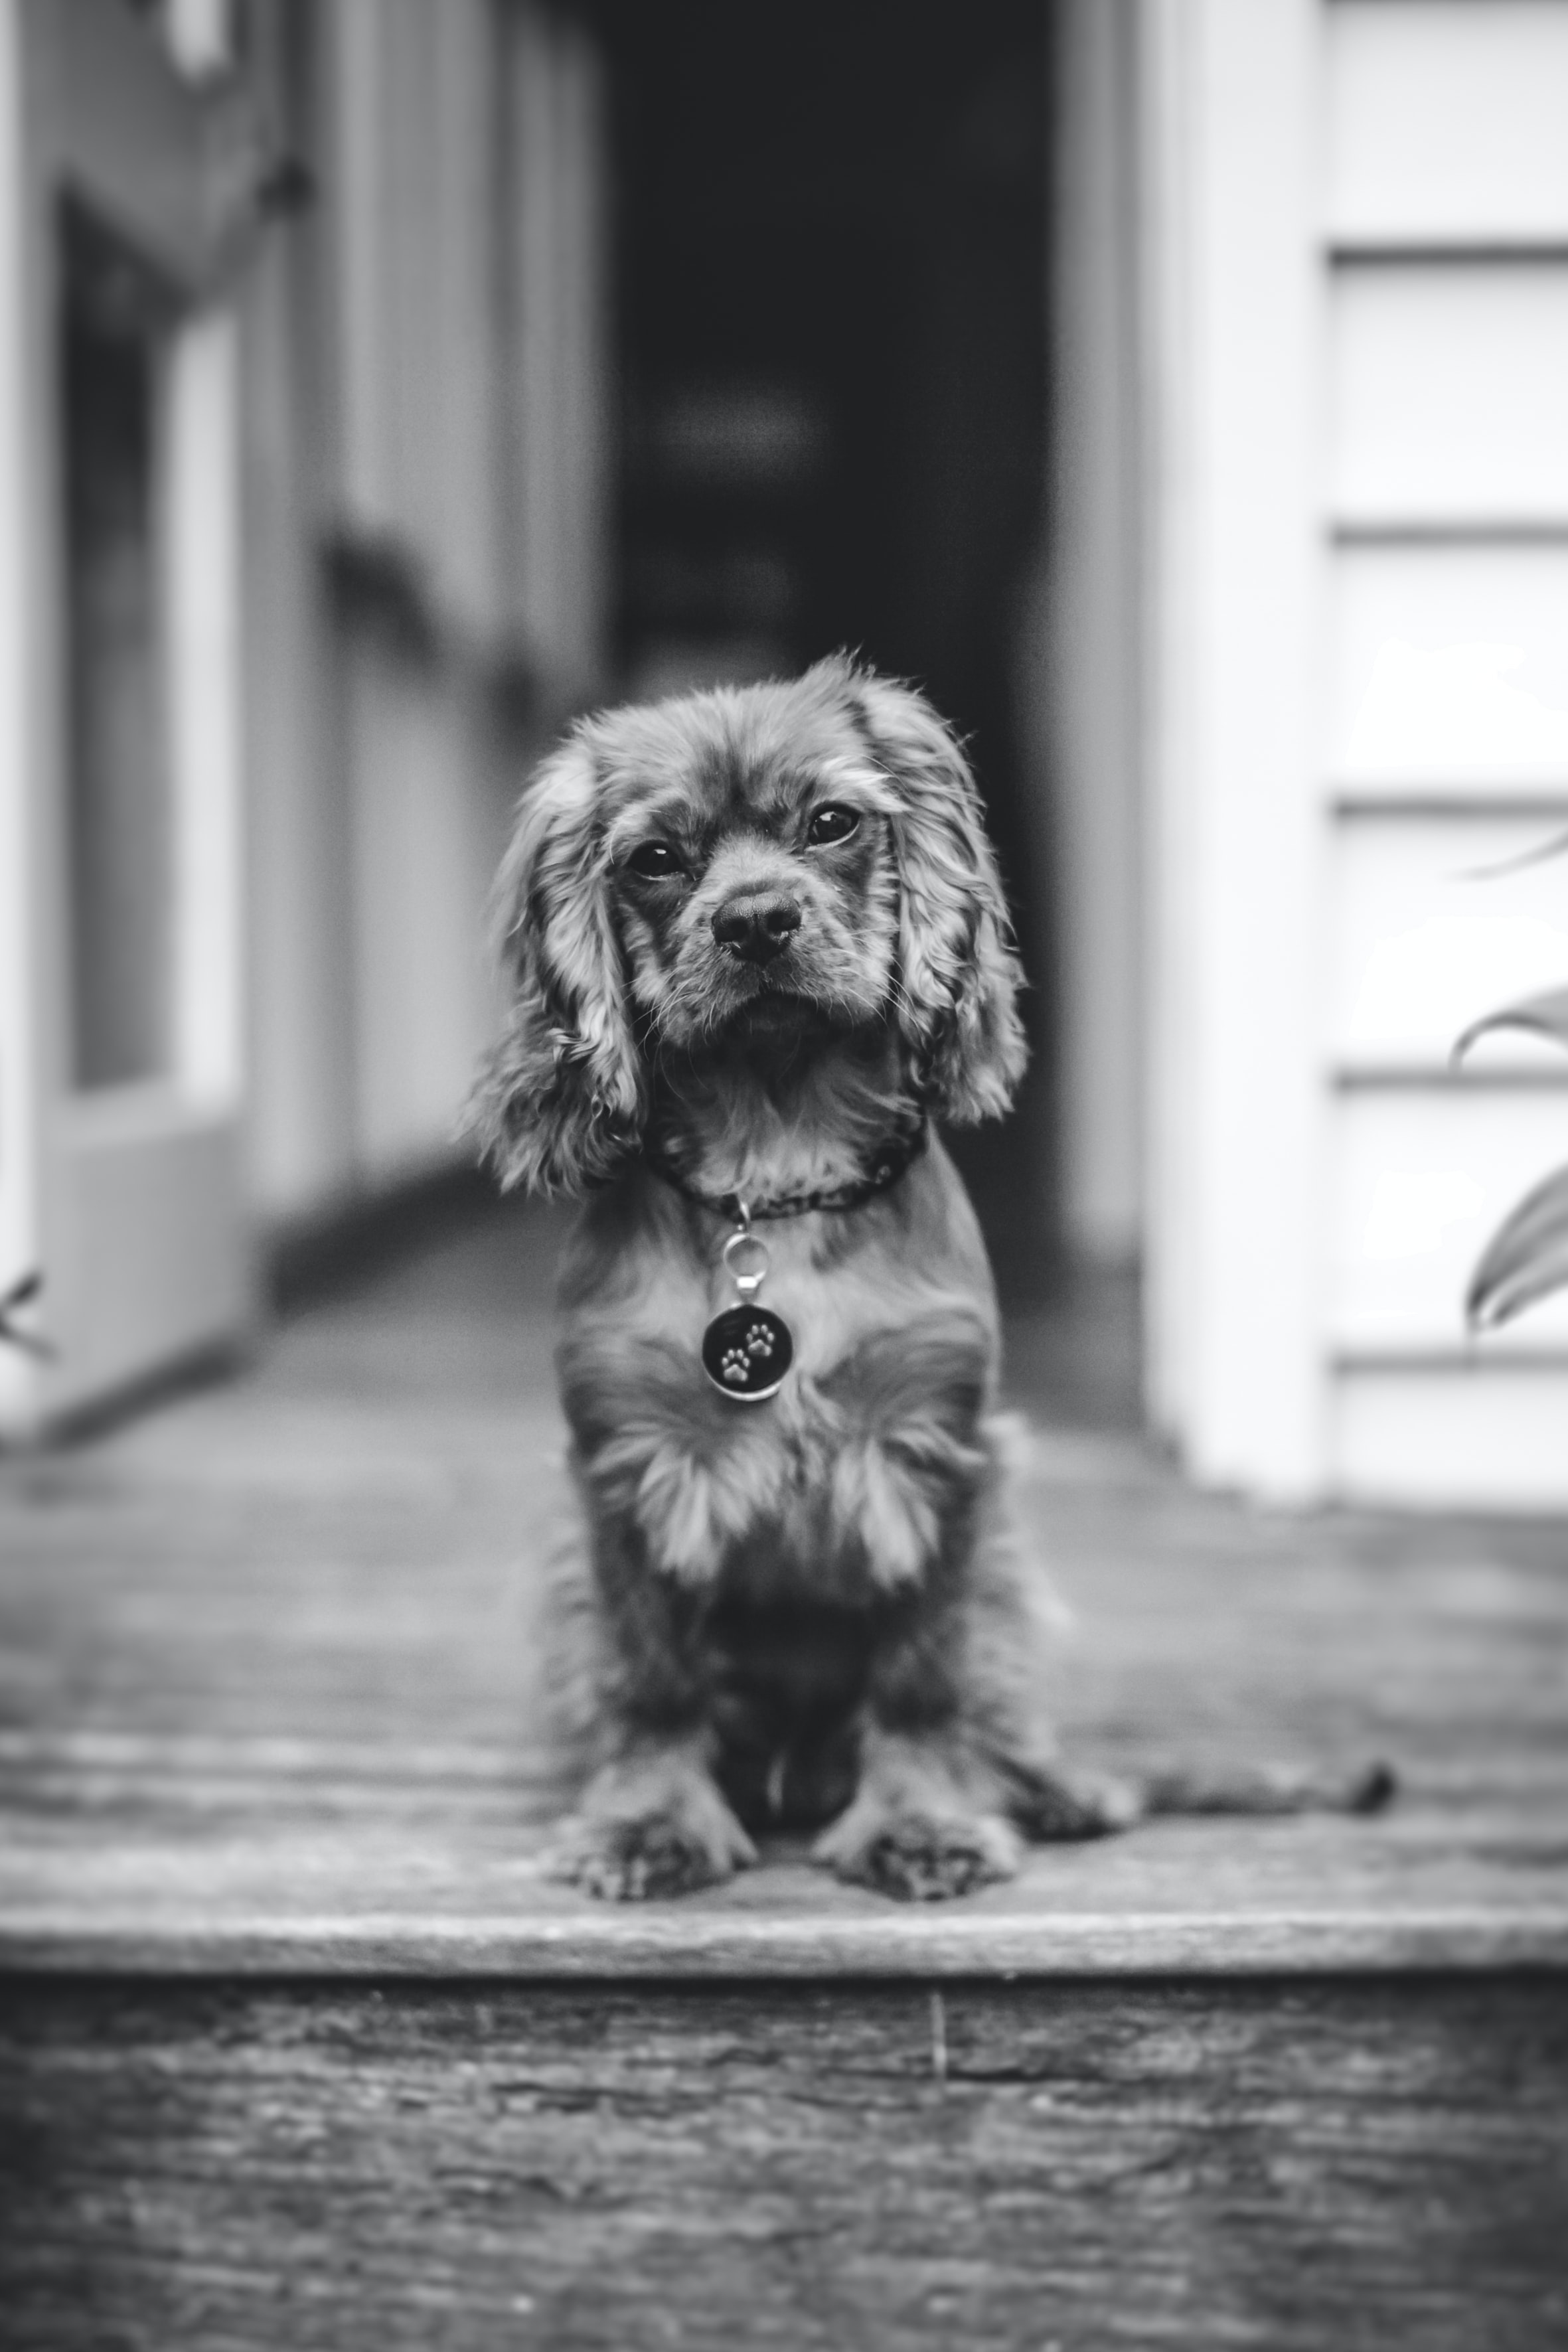 grayscale photo of dog sitting in front of door